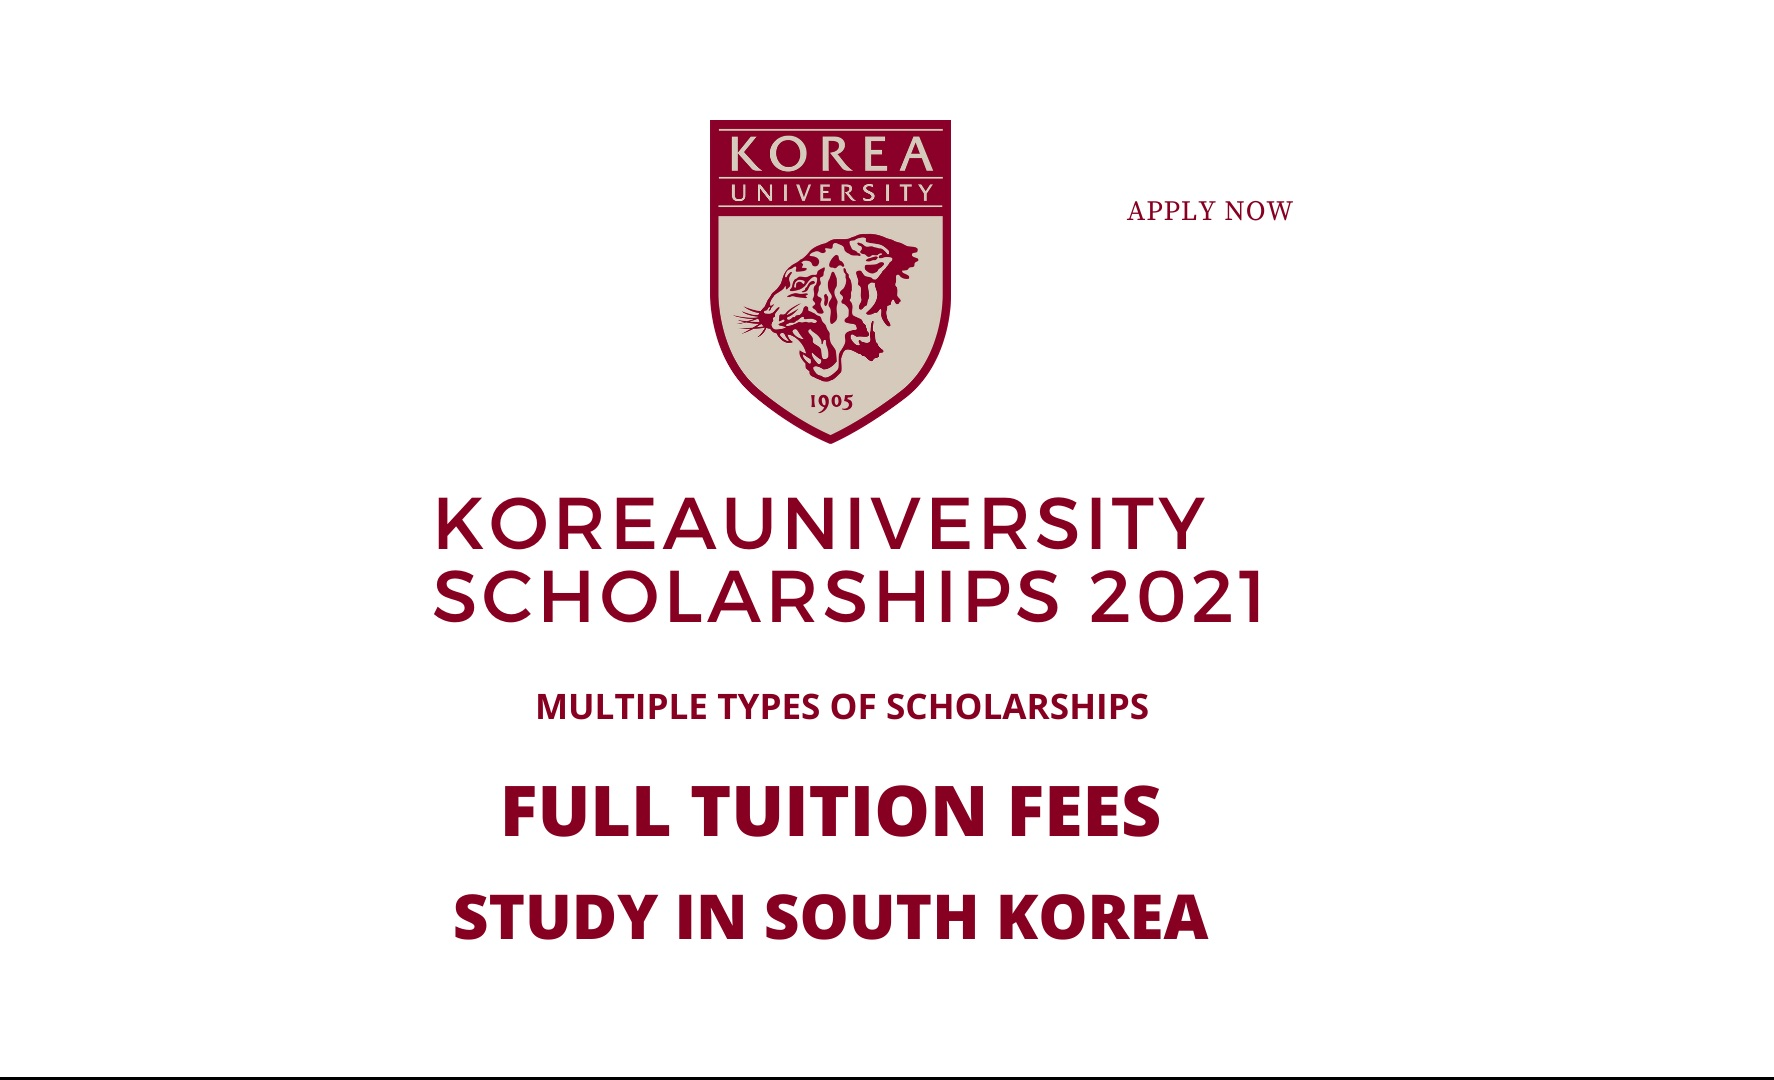 Korea University Scholarship 2021 - Spring - Study in Korea